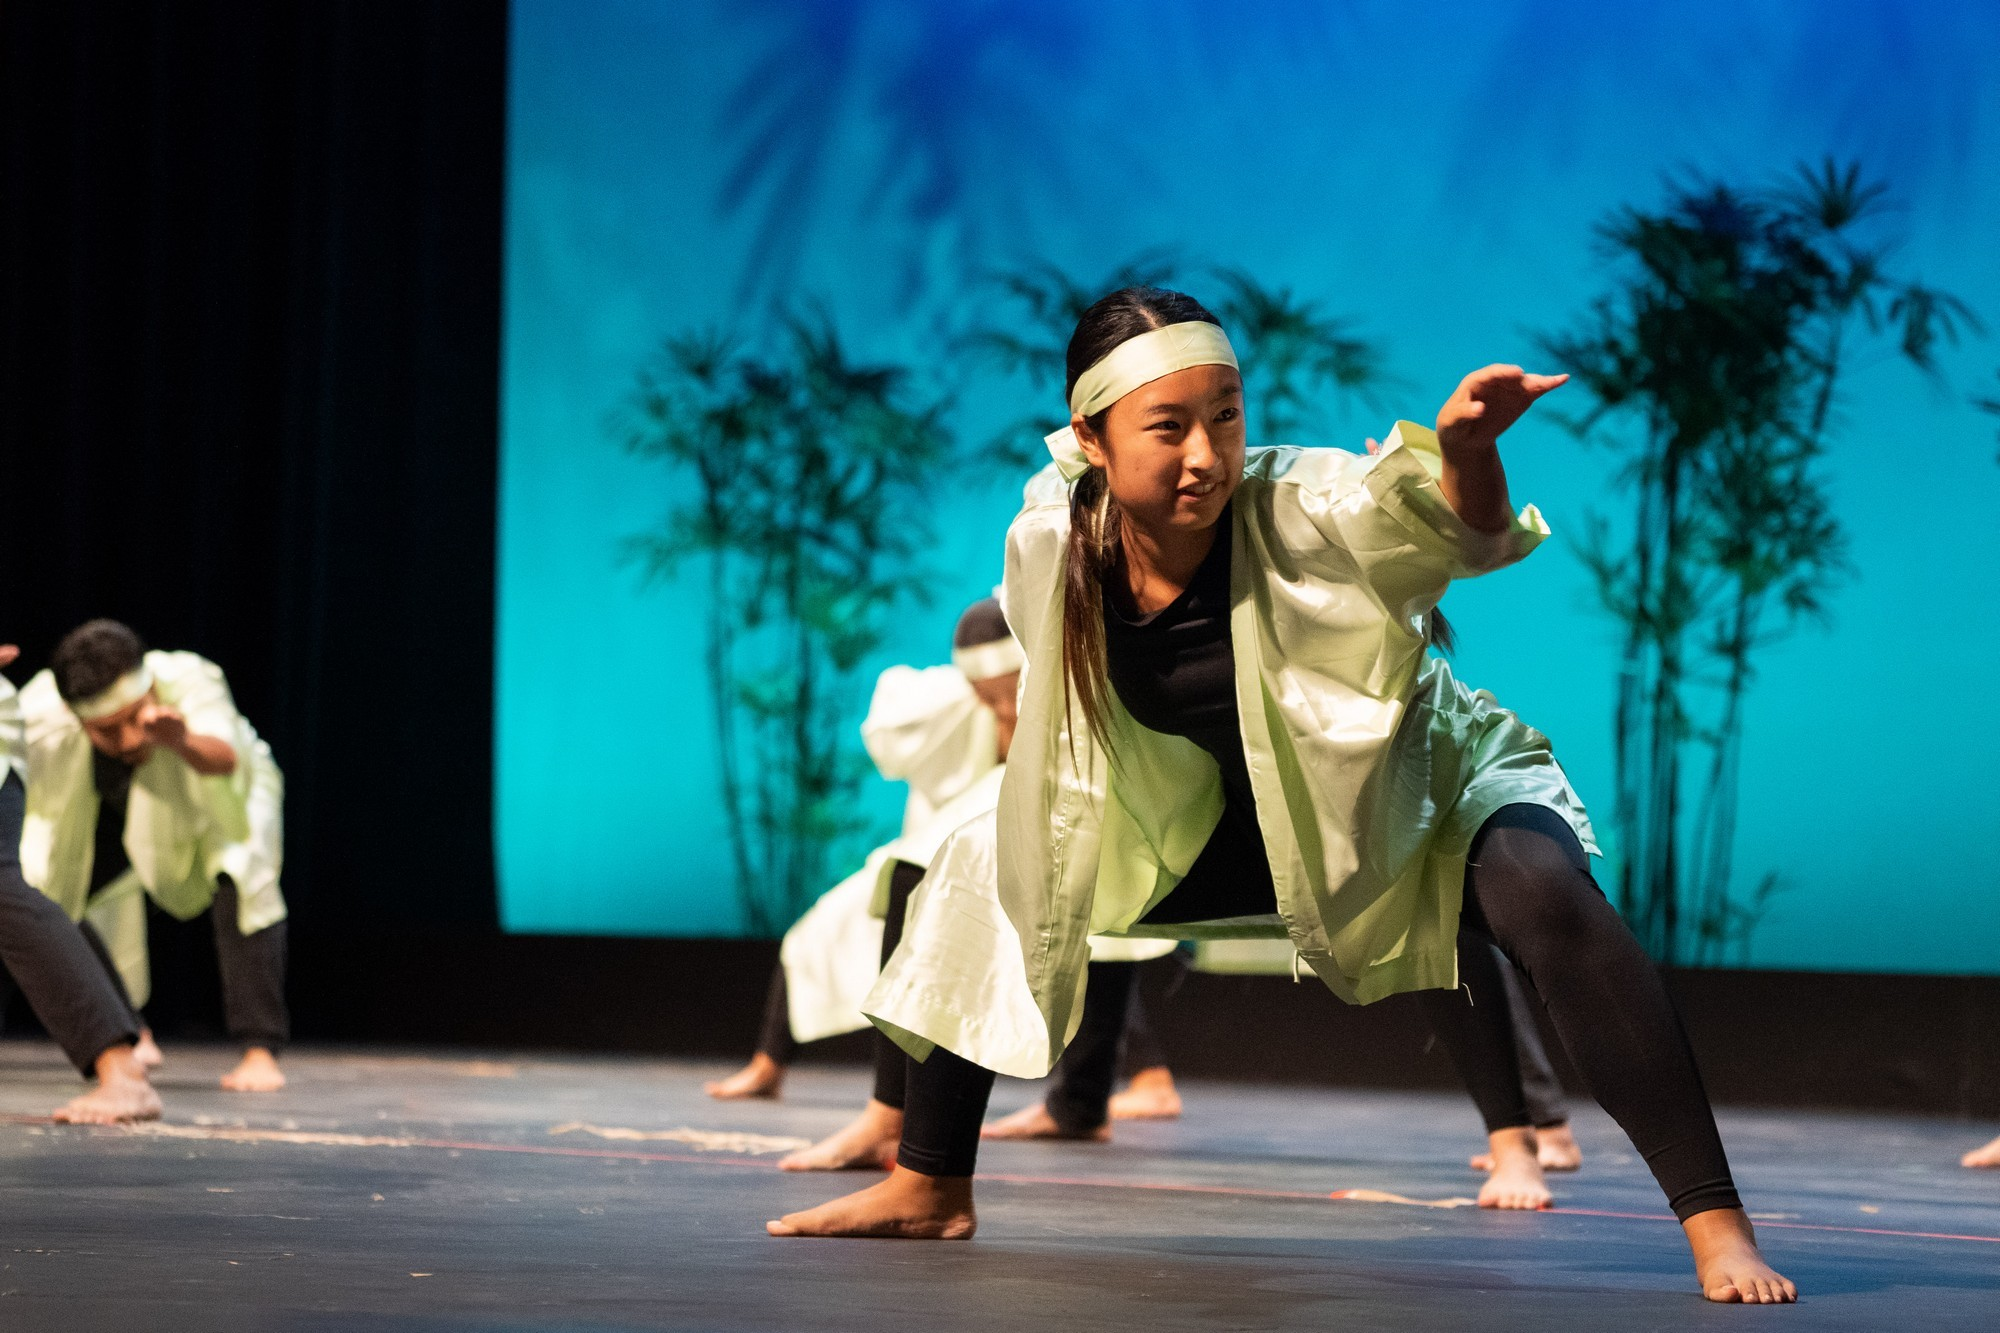 Single female dancer crouching with arm extended.